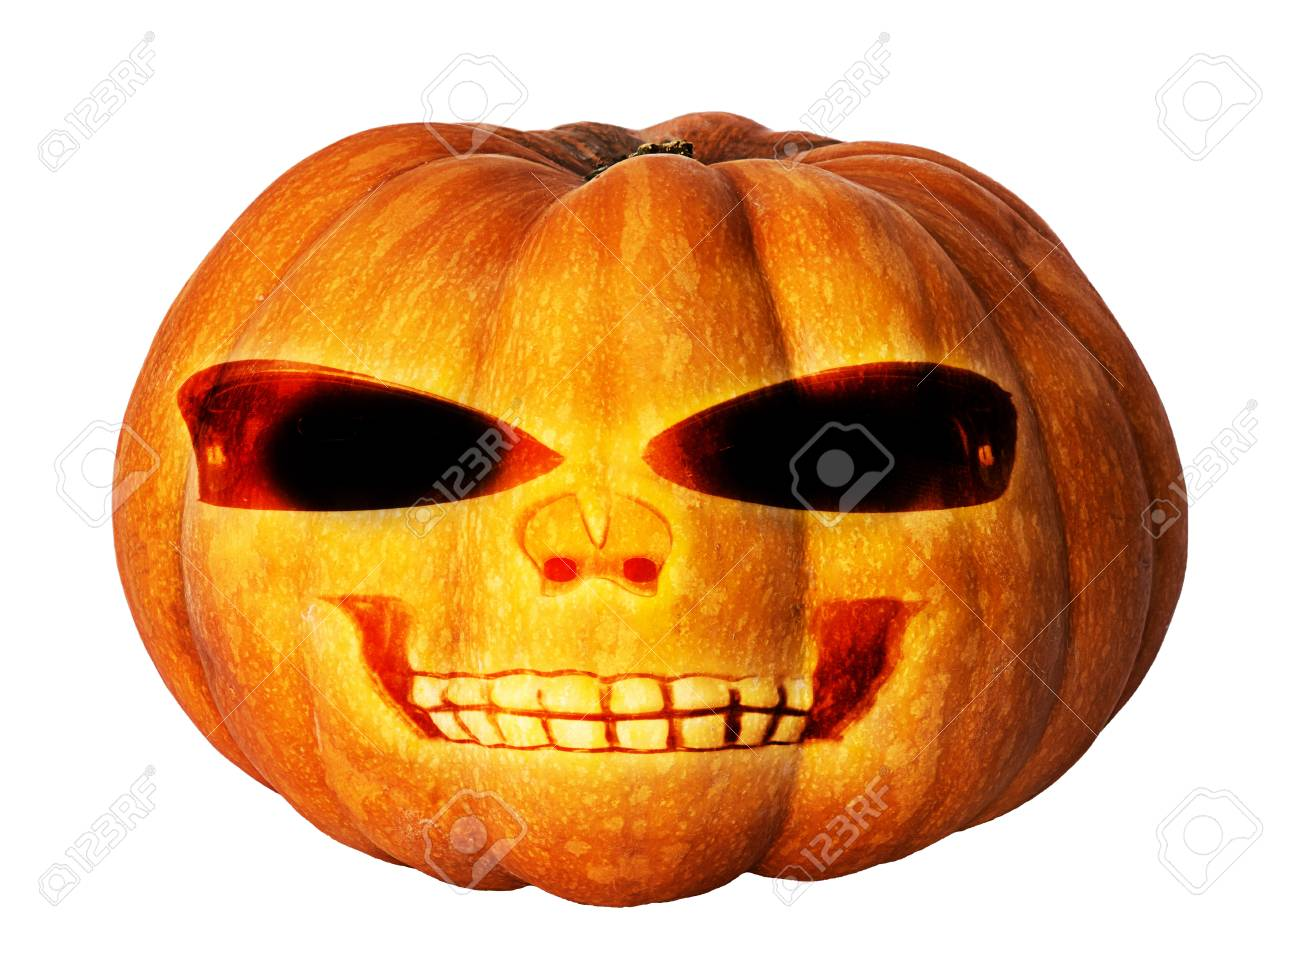 pumpkin with face for